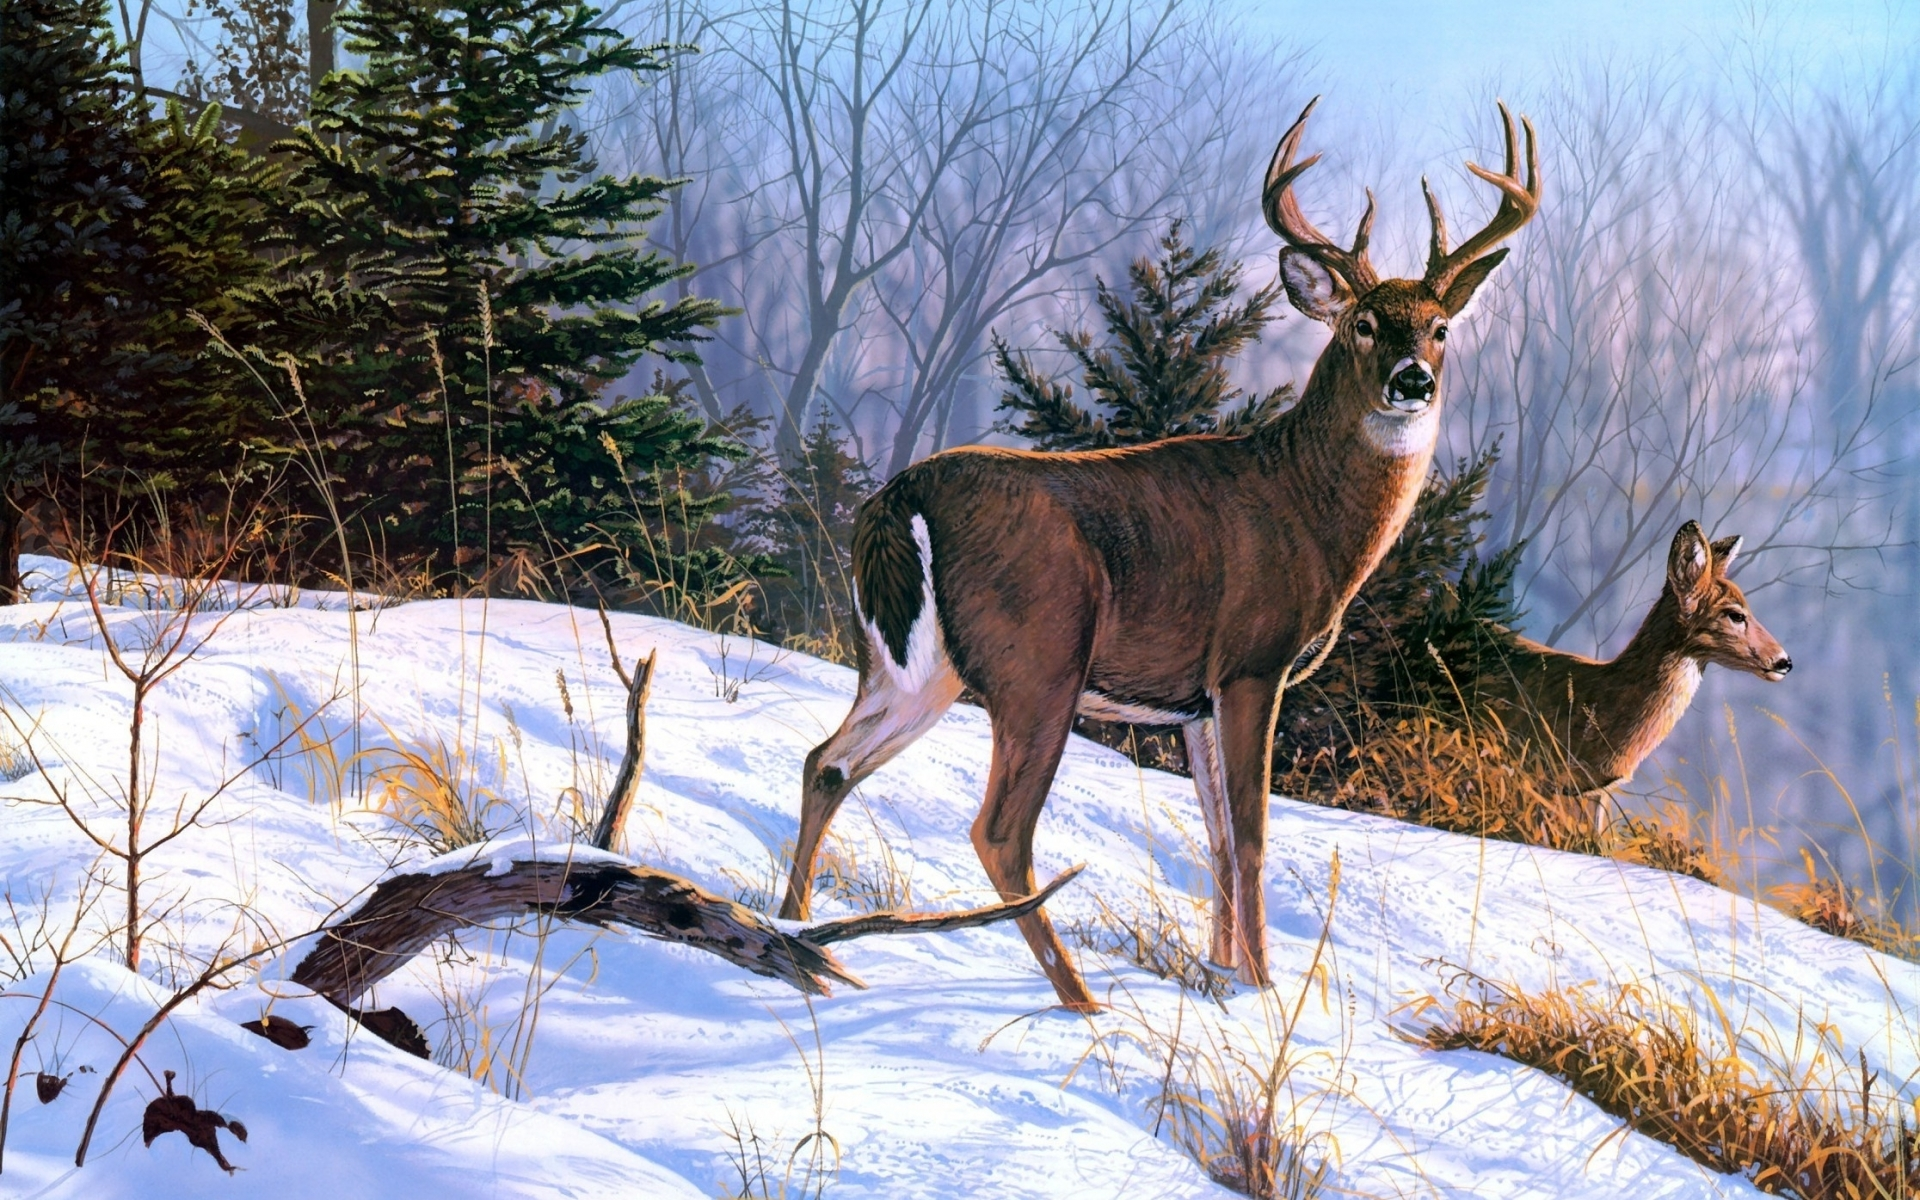 Deer art nature paintings winter wallpaper 1920x1200 29059 1920x1200